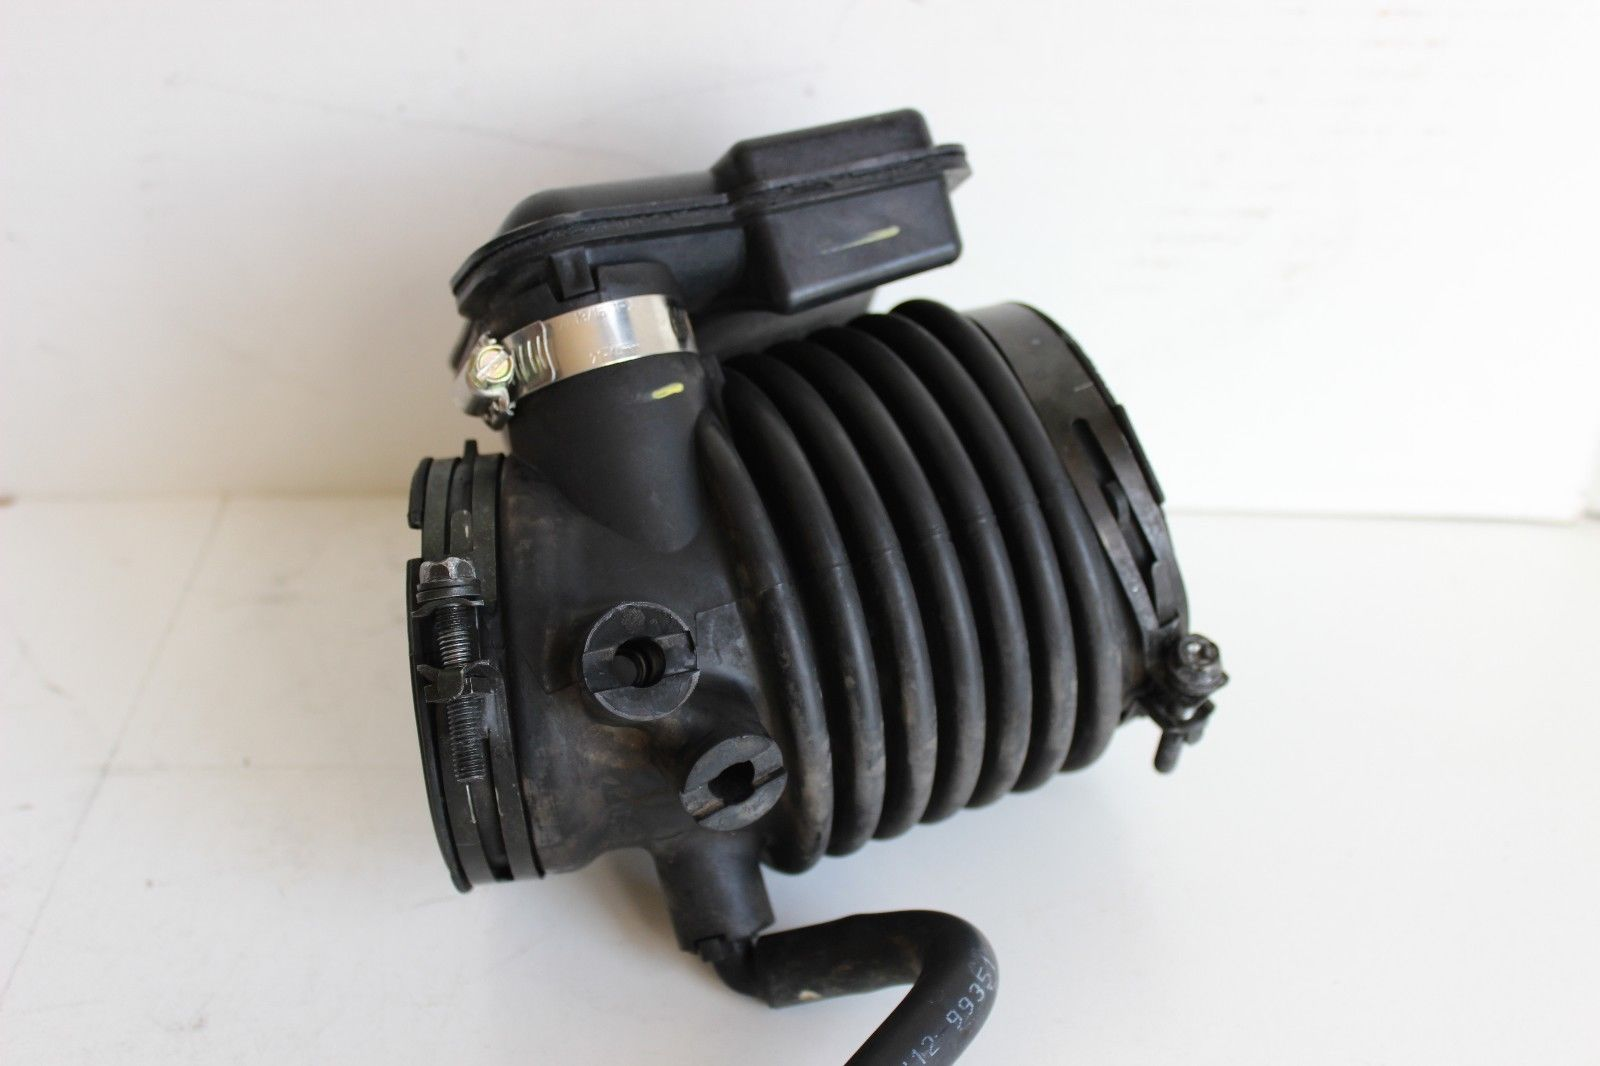 hight resolution of 2004 2005 2006 2007 2008 mazda rx8 rx 8 throttle body air intake hose and